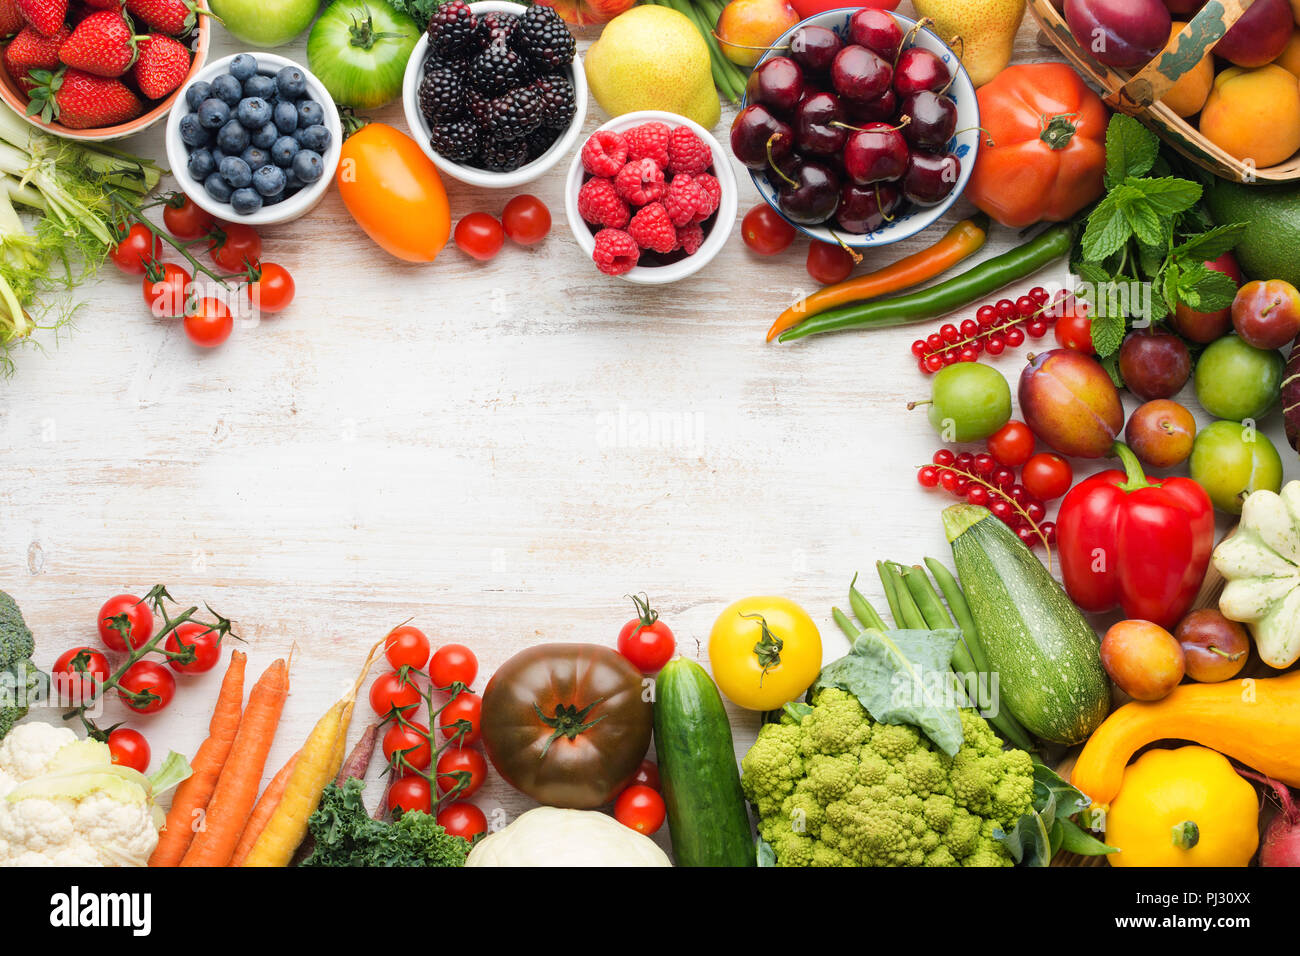 Healthy eating, summer fruits vegetables berries, cherries peaches strawberries cabbage broccoli cauliflower squash tomatoes carrots spring onions beans beetroot, copy space, top view, selective focus Stock Photo